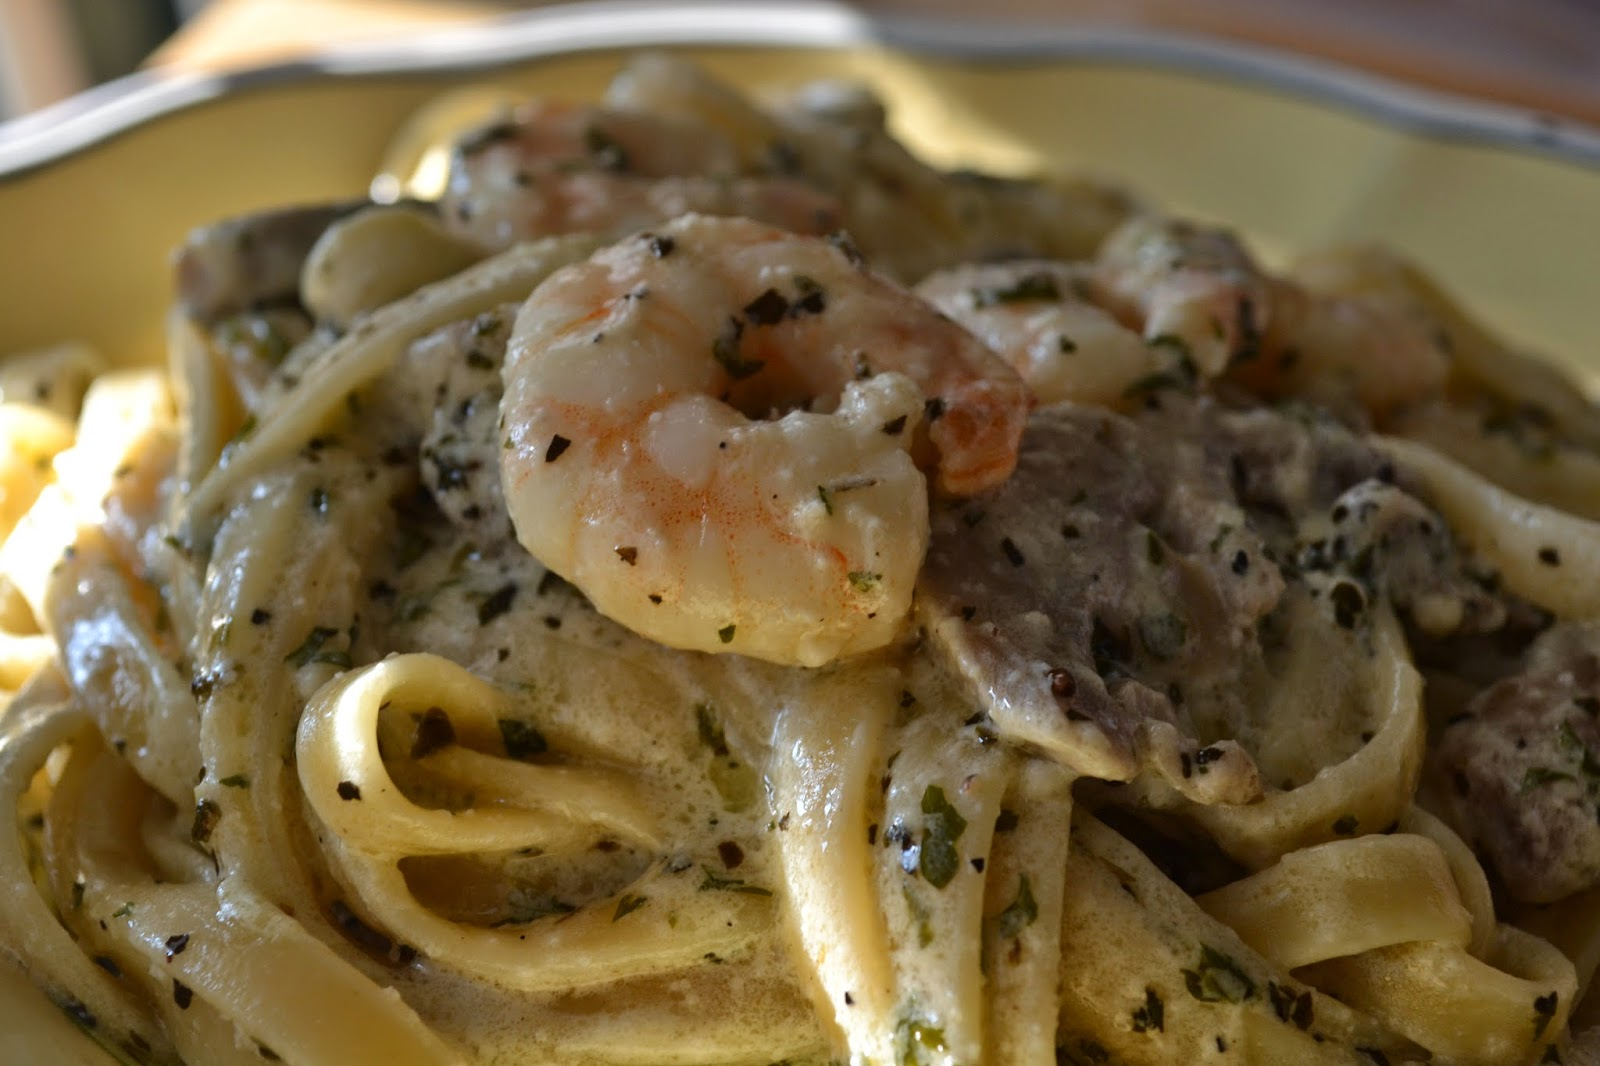 Making Miracles: Creamy Shrimp and Mushroom Pasta